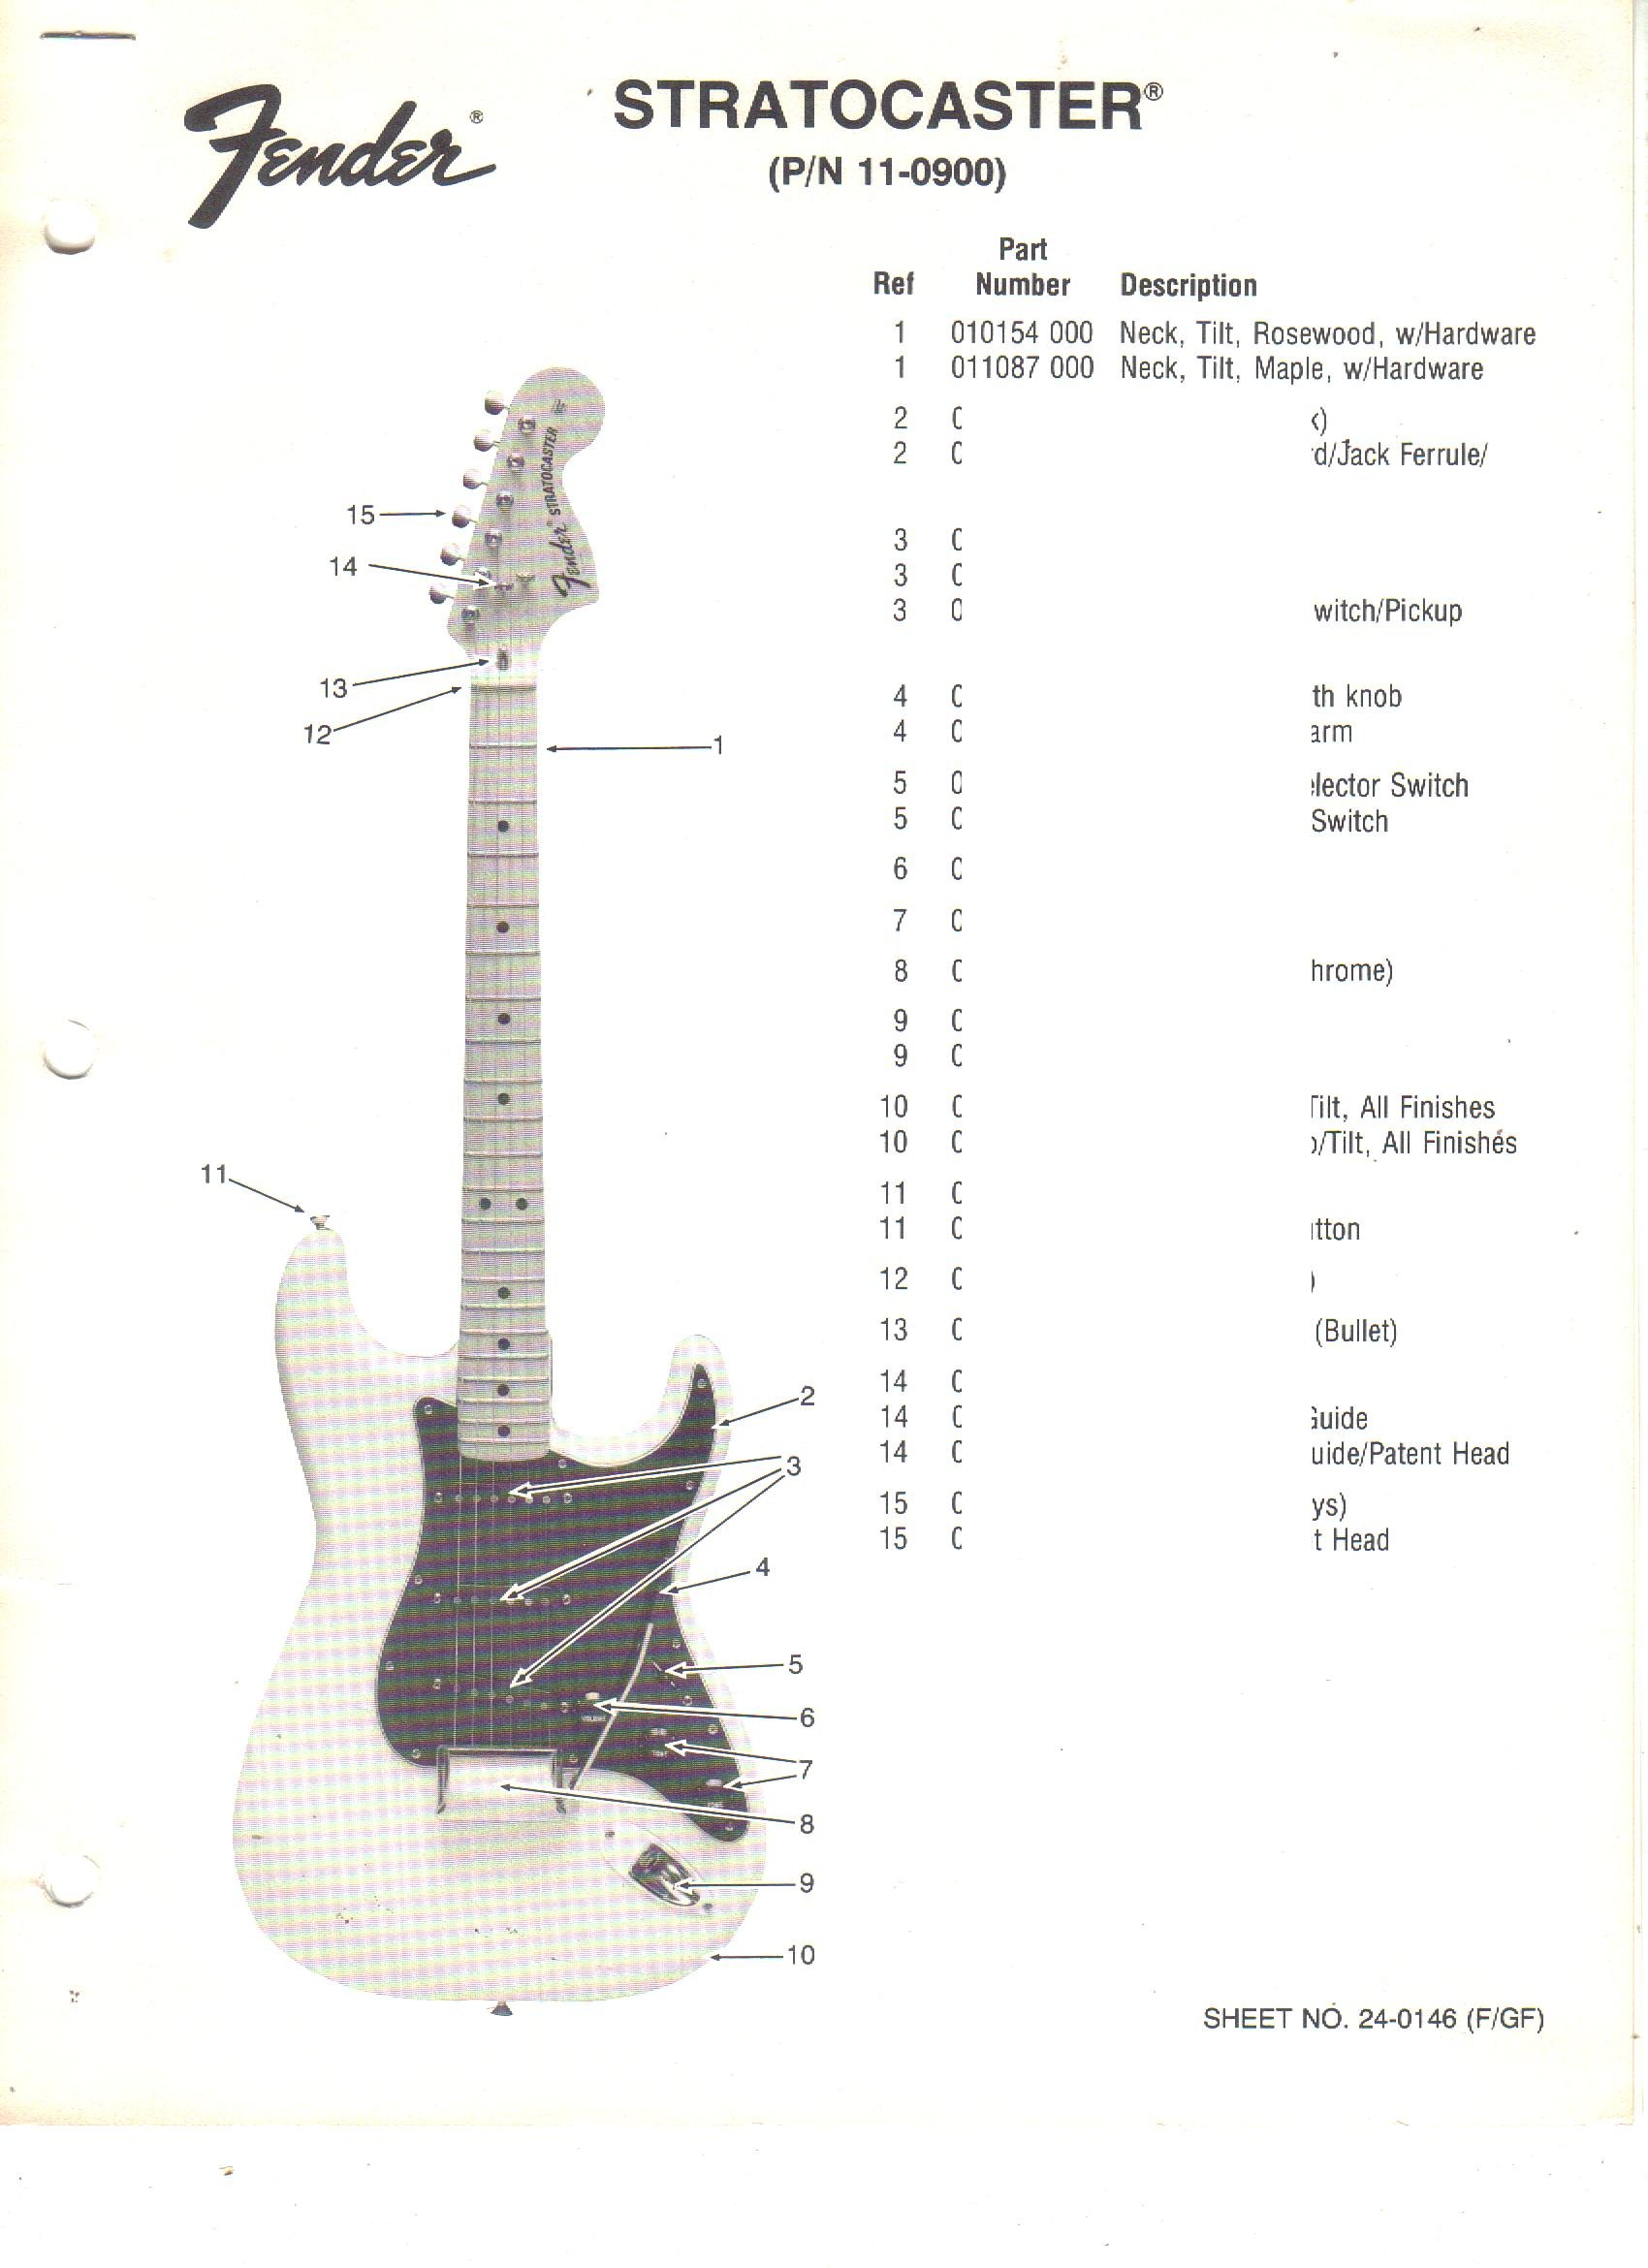 Groovy Wiring Diagram For Fender Stratocaster Basic Electronics Wiring Wiring Cloud Toolfoxcilixyz